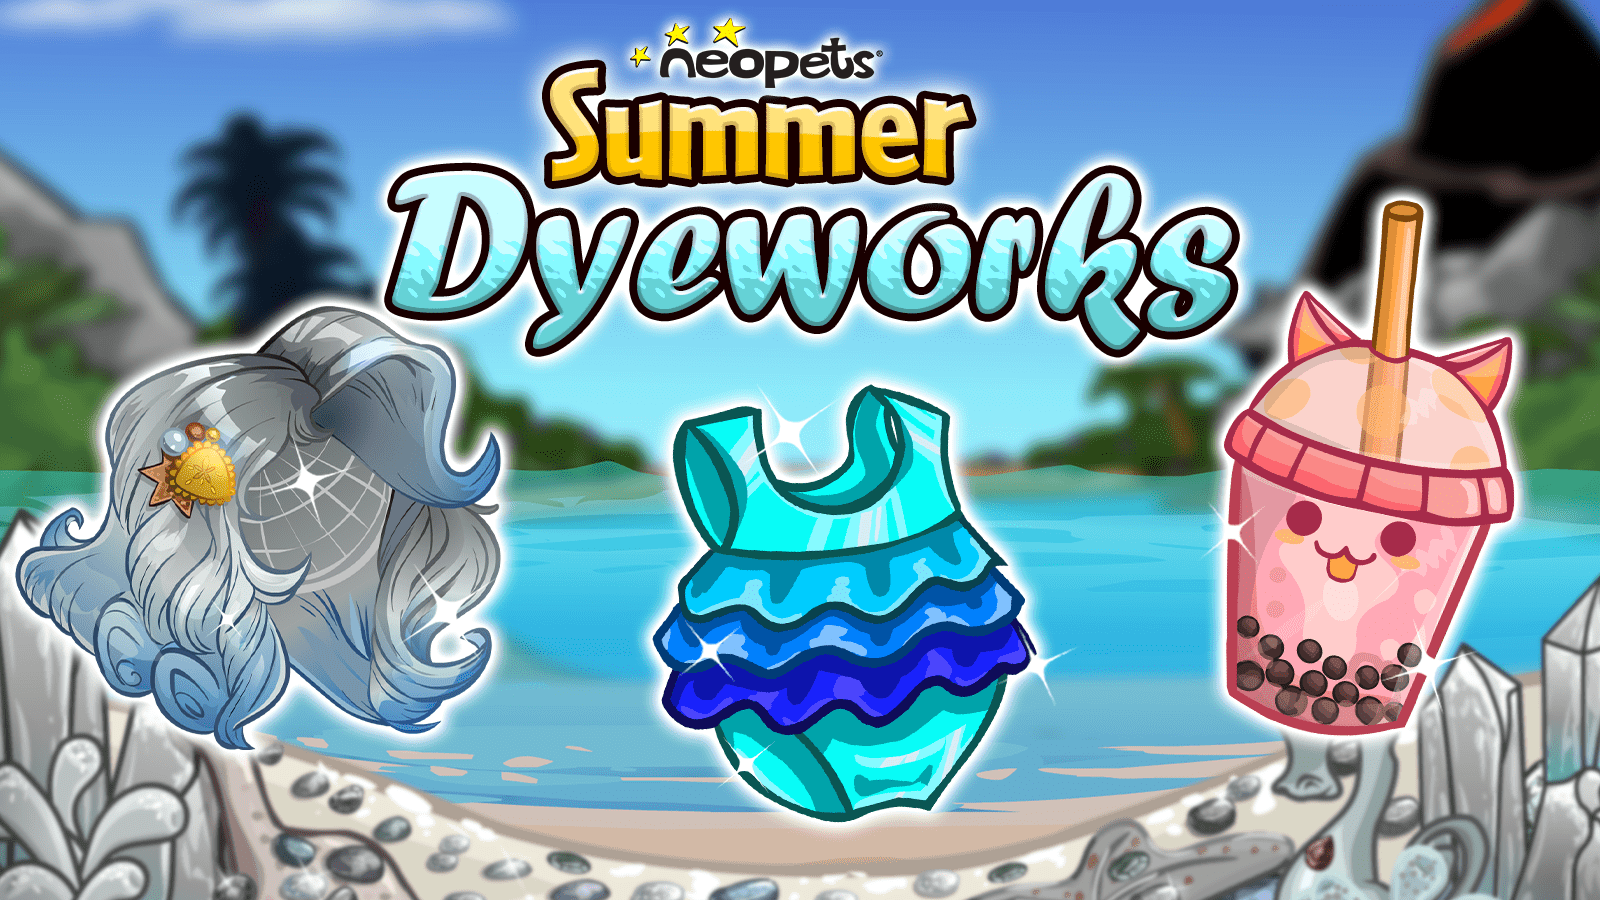 https://images.neopets.com/homepage/marquee/summer_dyeworks_2021_lofnf.png